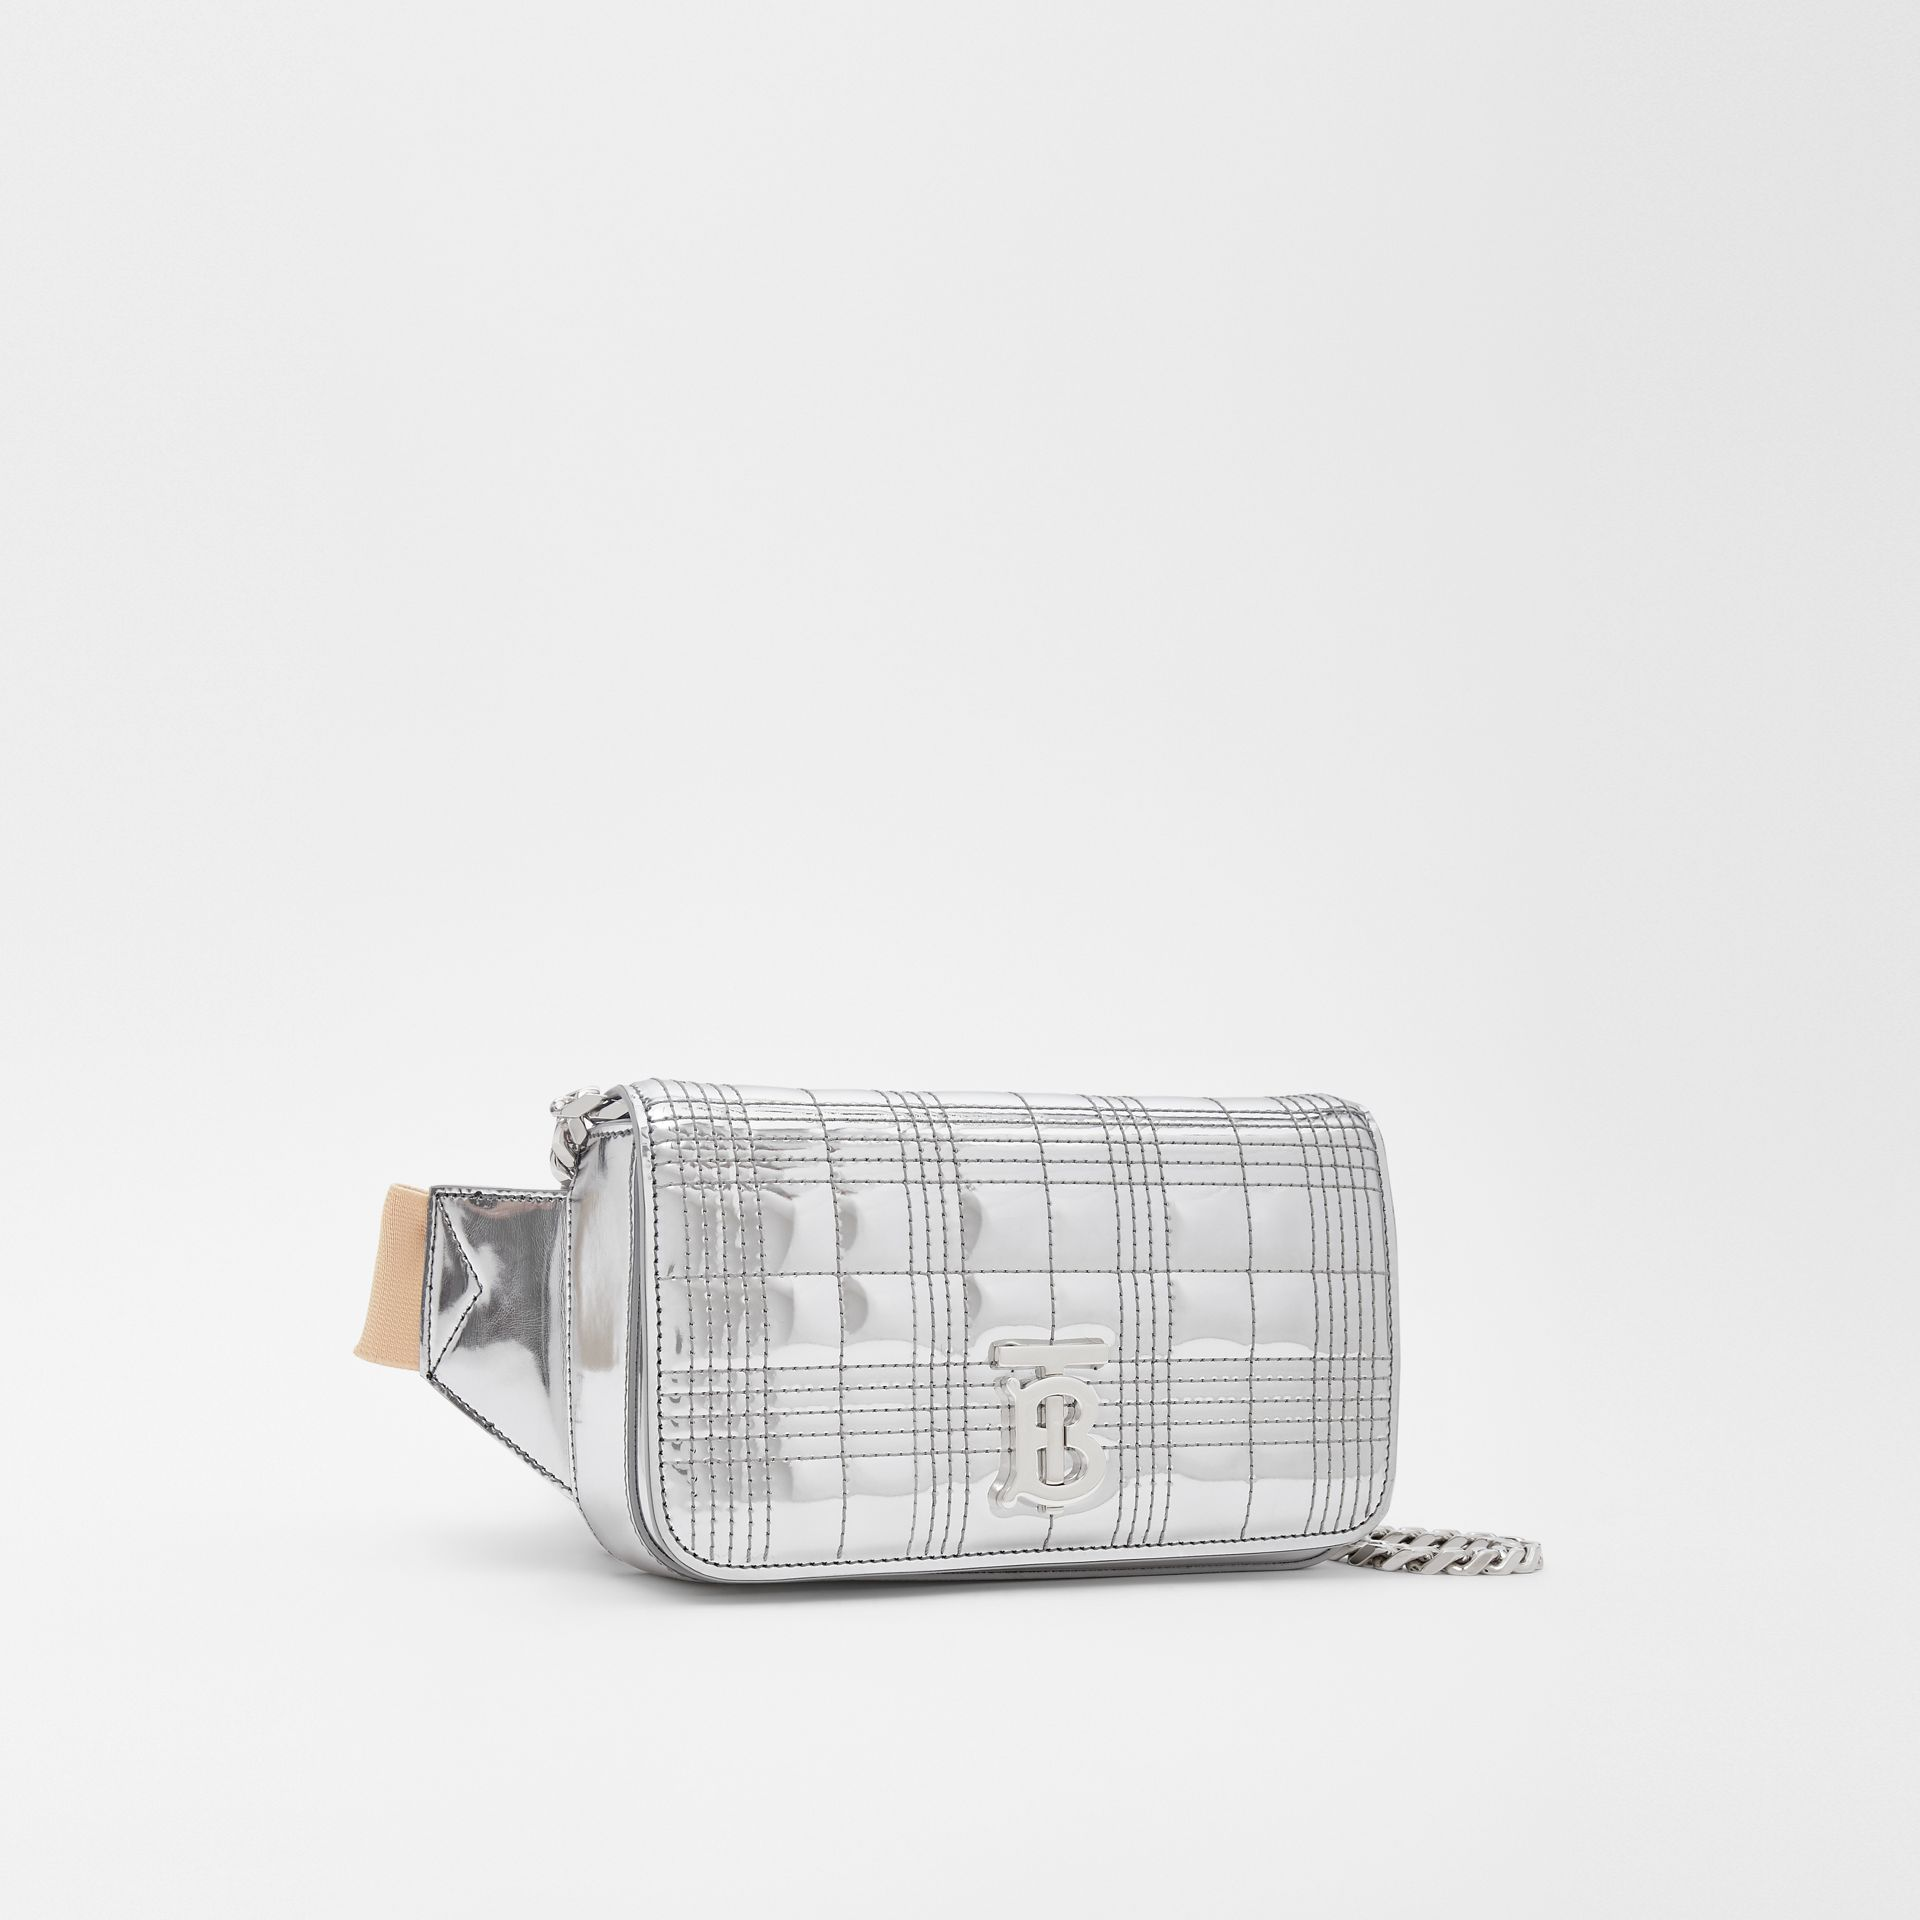 Quilted Metallic Lola Bum Bag with Chain Strap in Silver | Burberry - gallery image 7